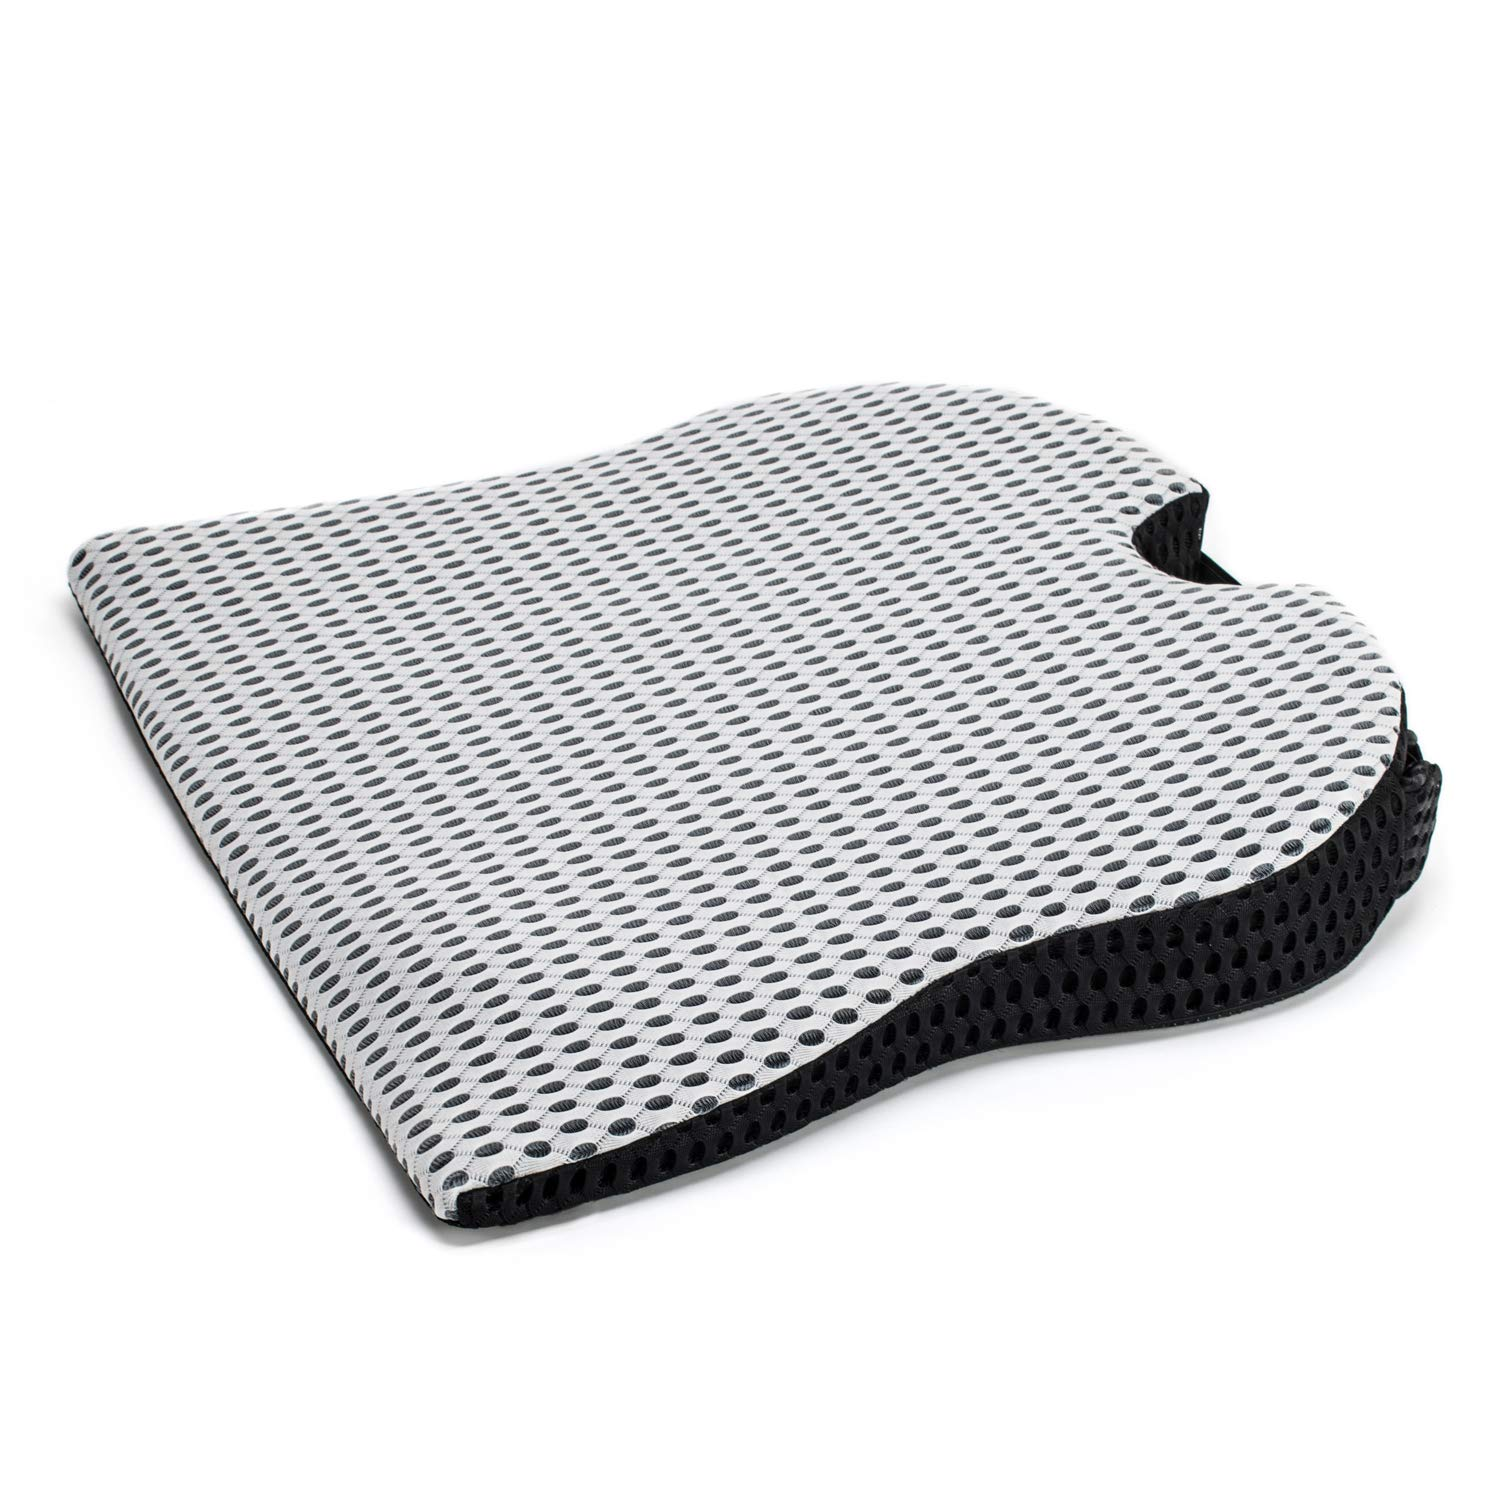 Dreamer Car Wedge Seat Cushion with Strap -Memory Foam Coccyx Wedge Pad -Orthopedic Support and Pain Relief for Lower Back, Tailbone, Coccyx and Hips-Off White